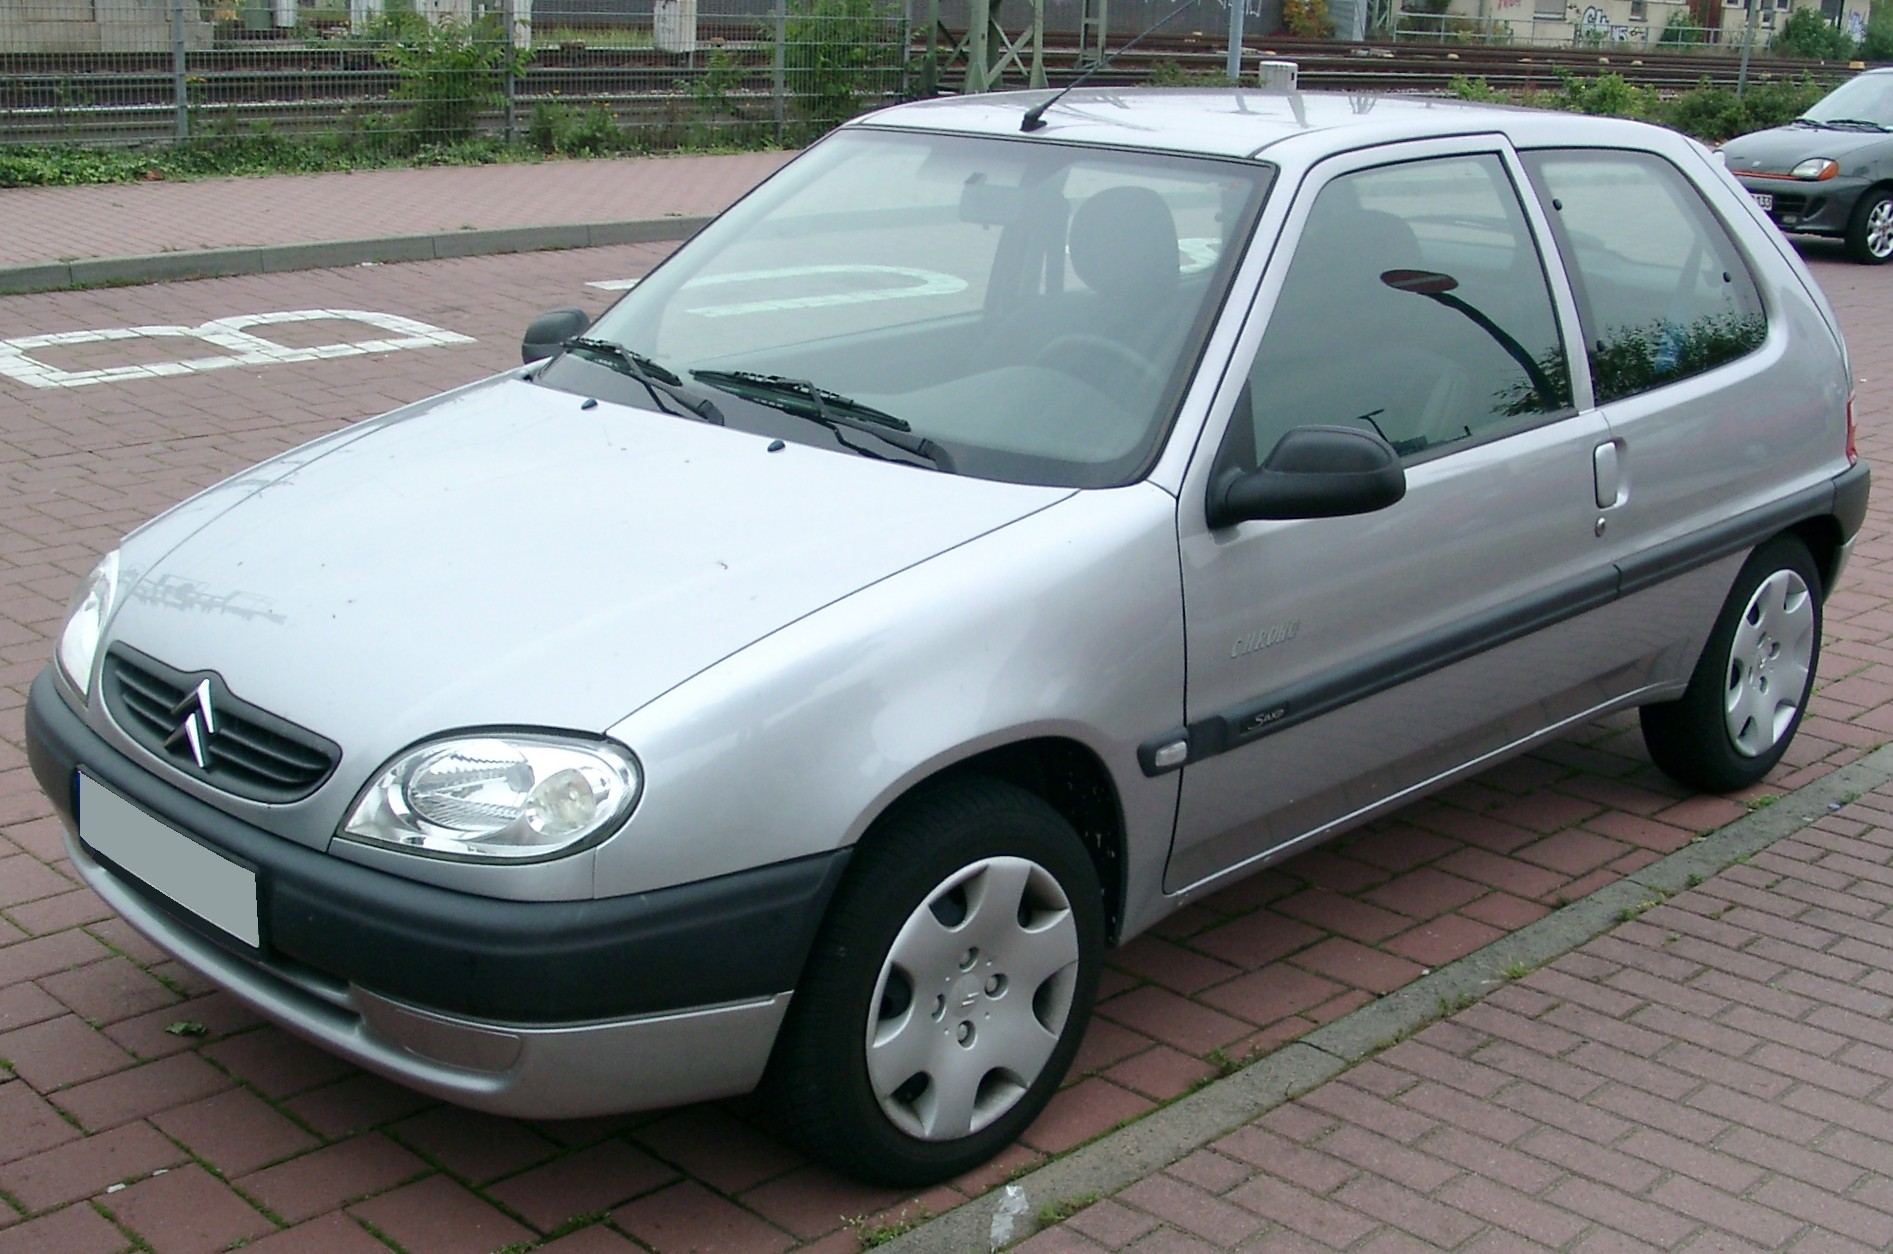 Citroen saxo photo - 3